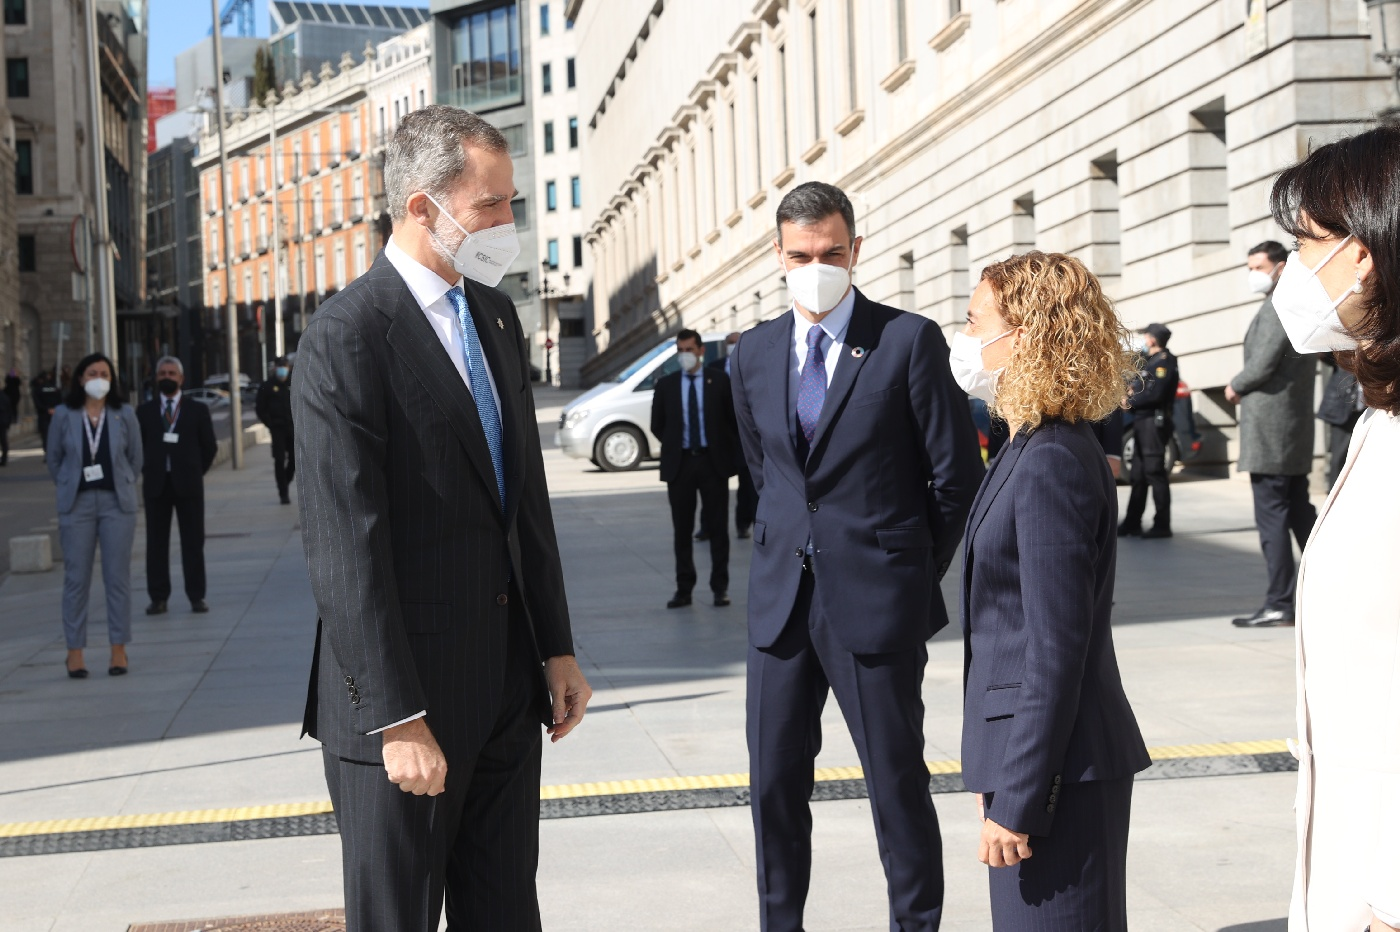 King Felipe of Spain attended 40TH Anniversary oF February 23, 1981's Institutional Act